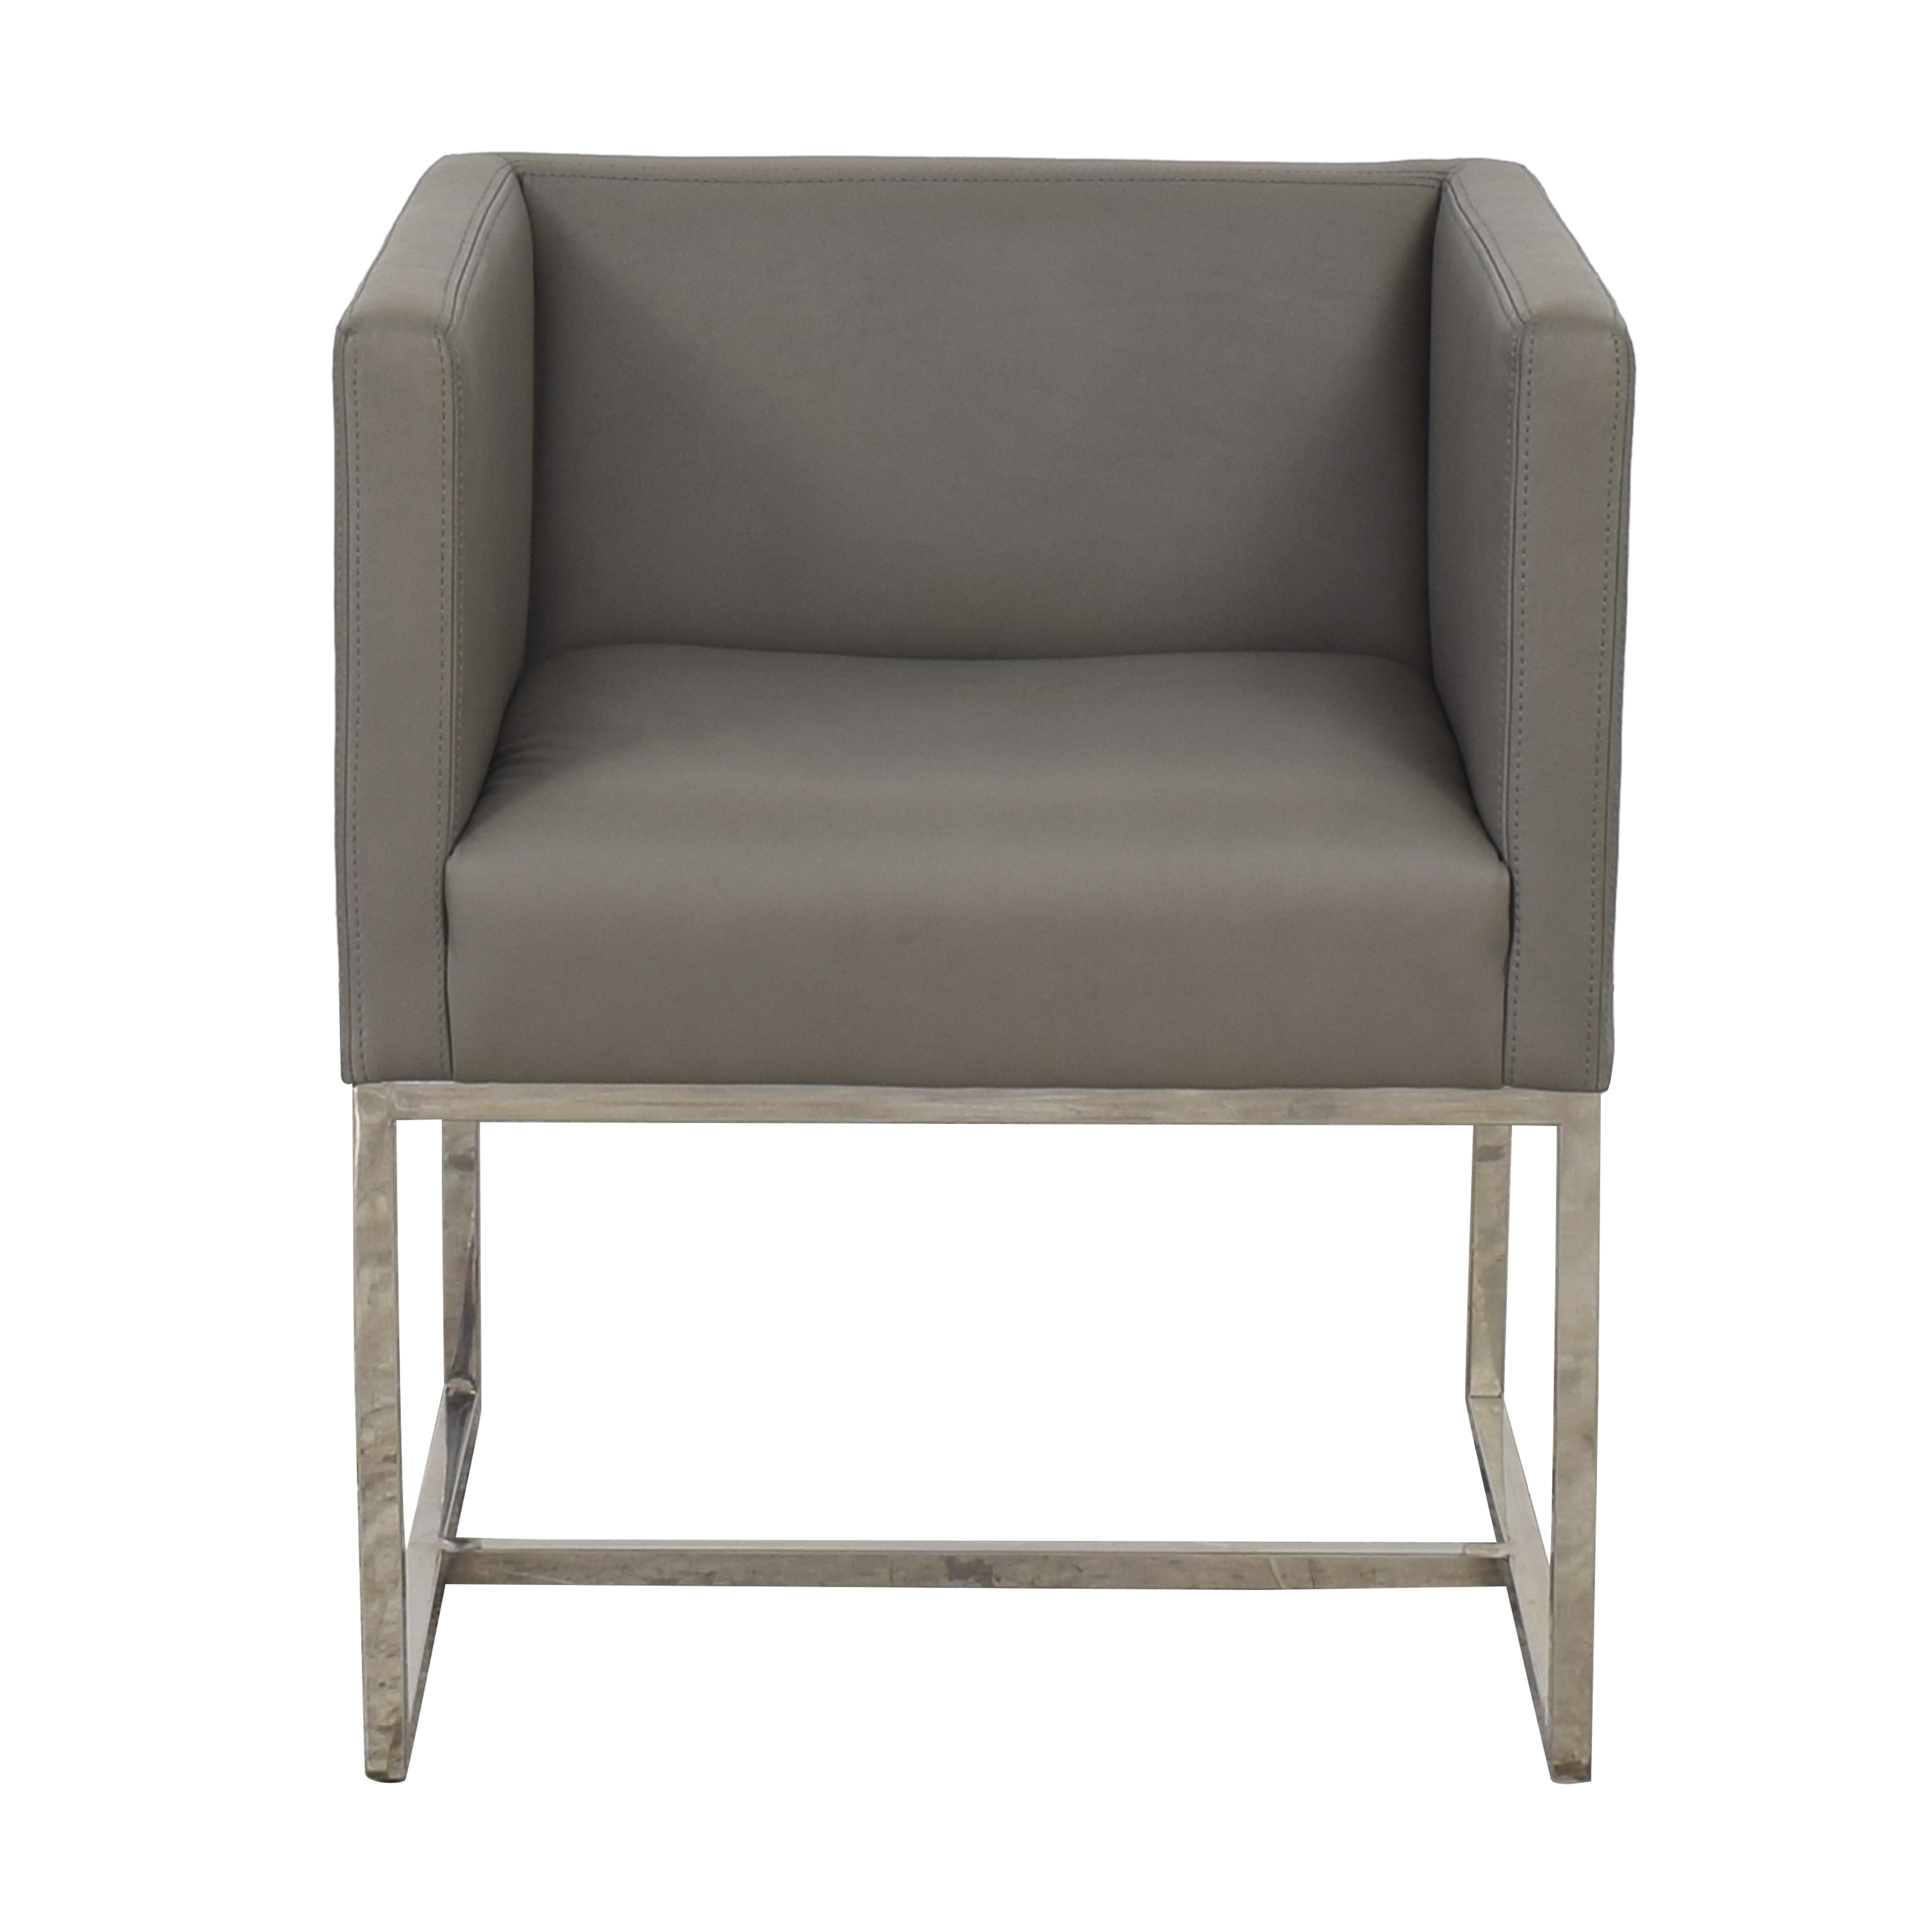 Restoration Hardware Emery Shelter Armchair Restoration Hardware